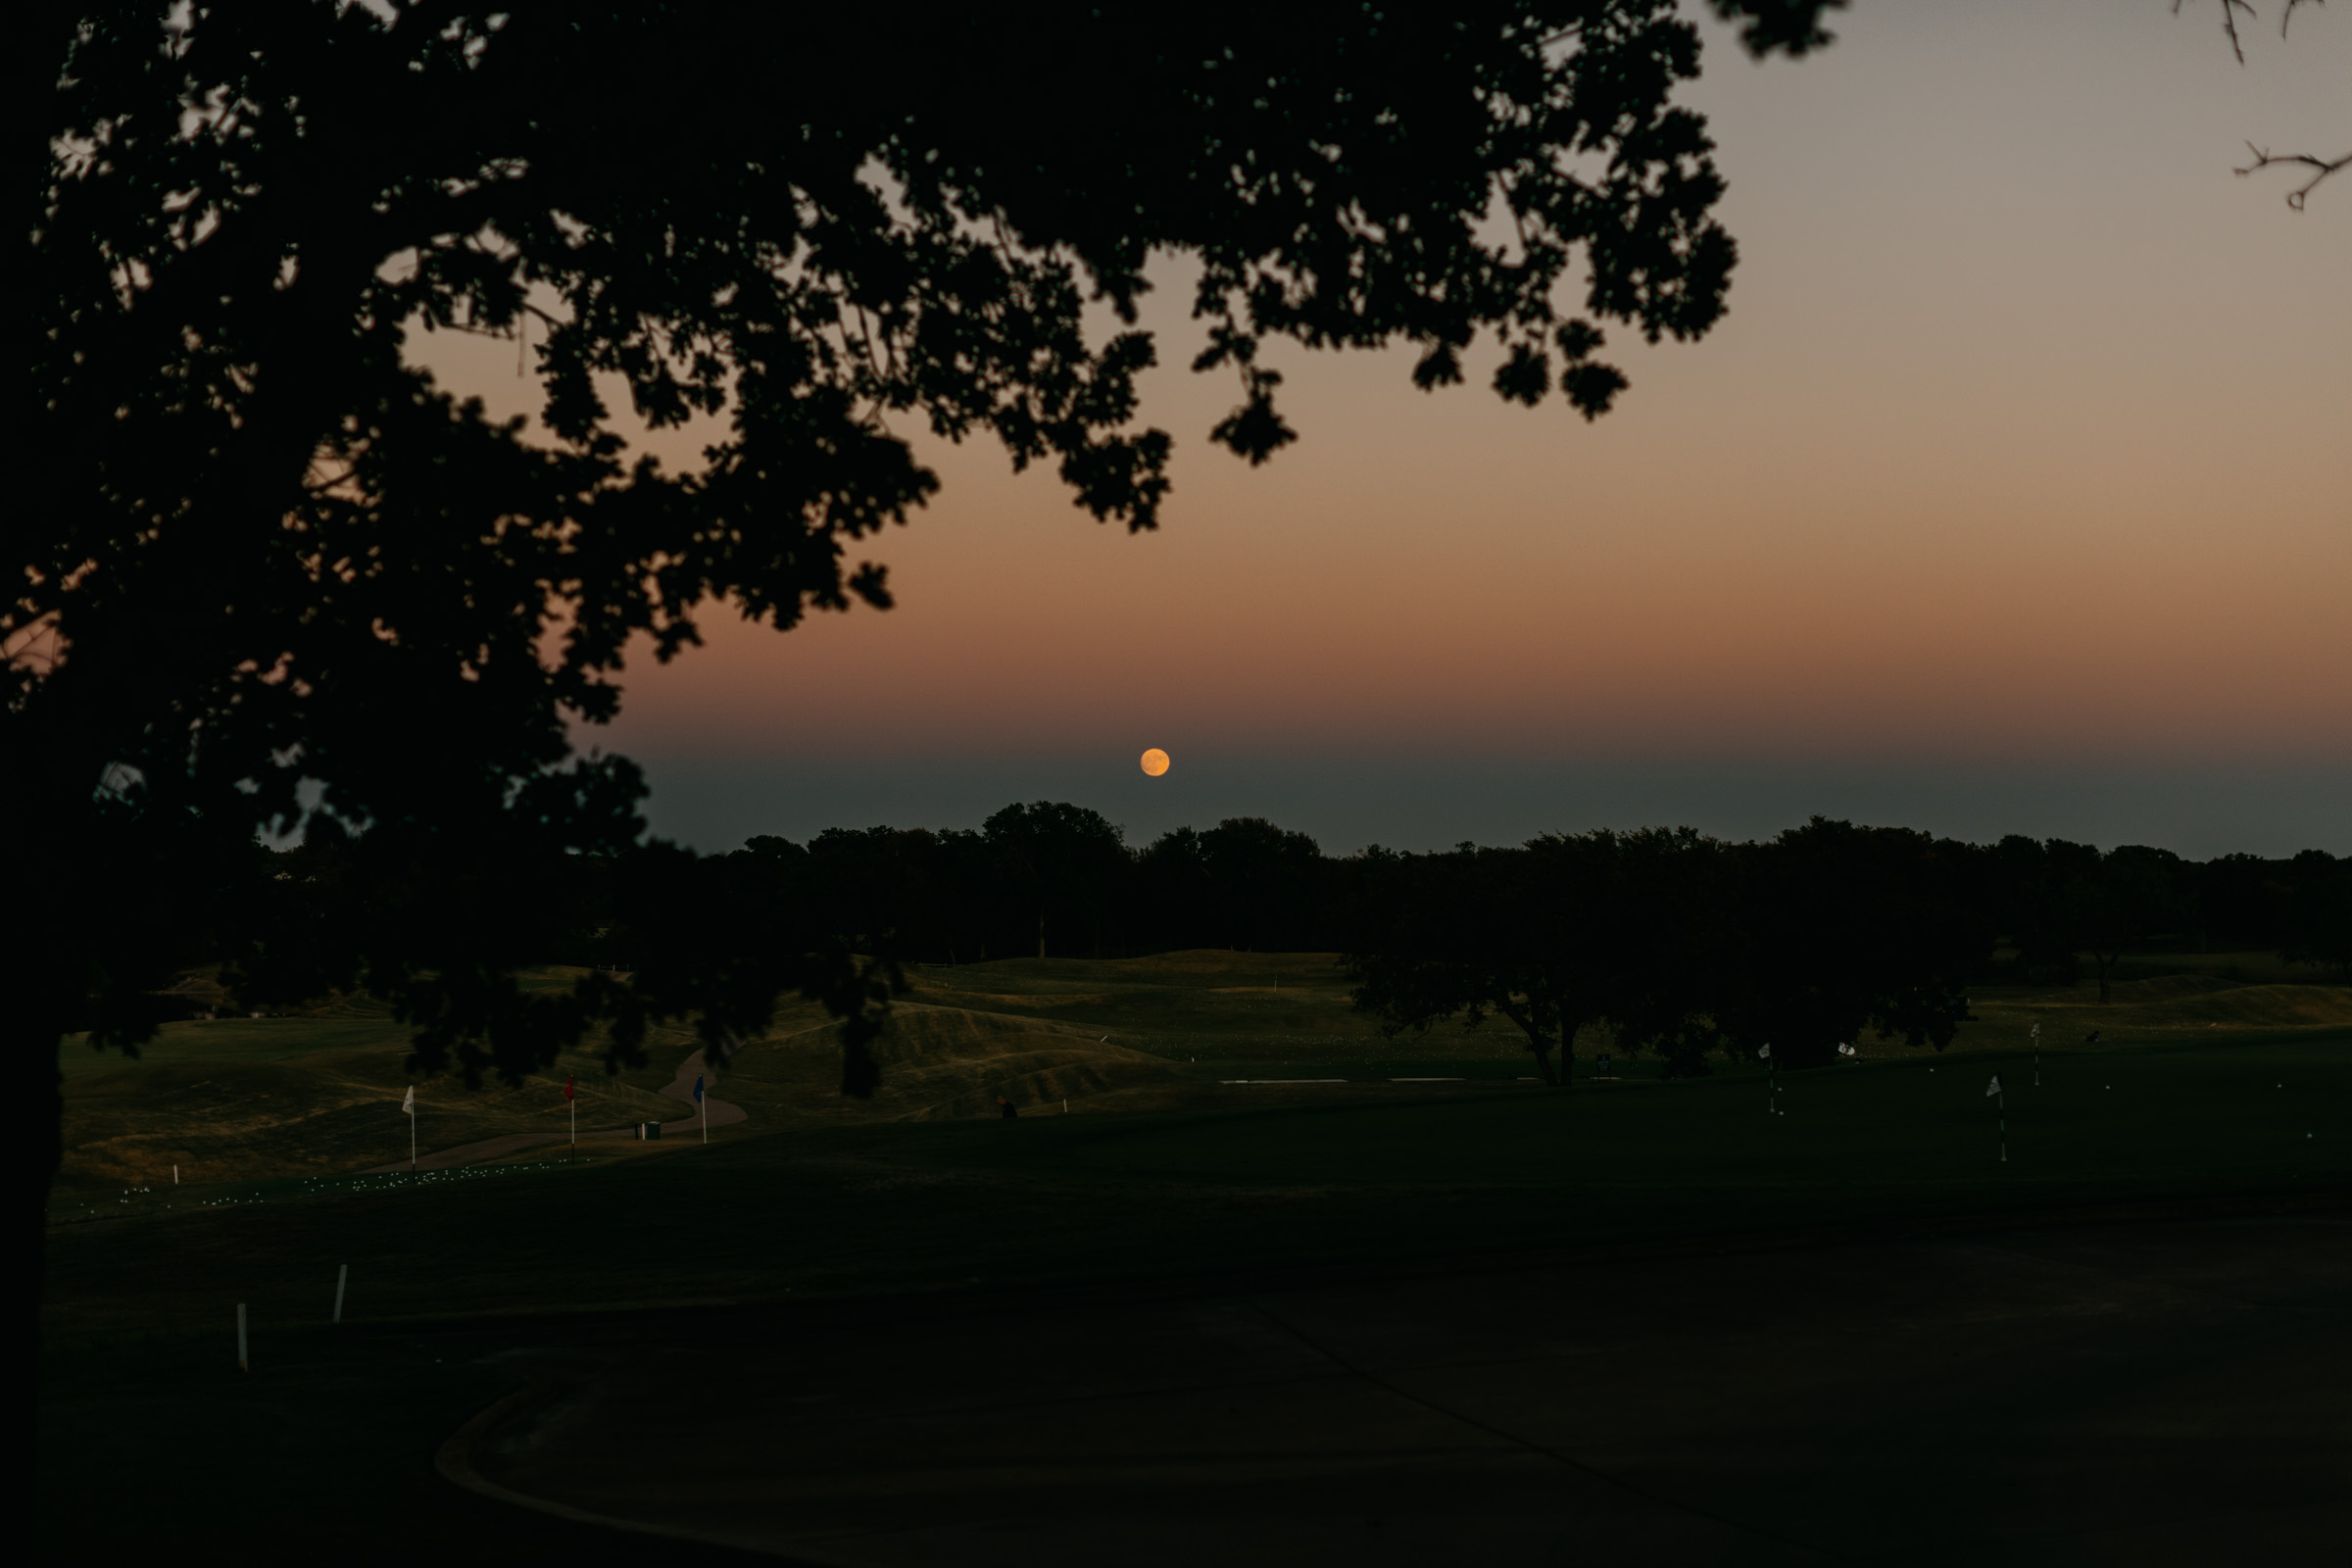 beautiful moon photo over a golf course